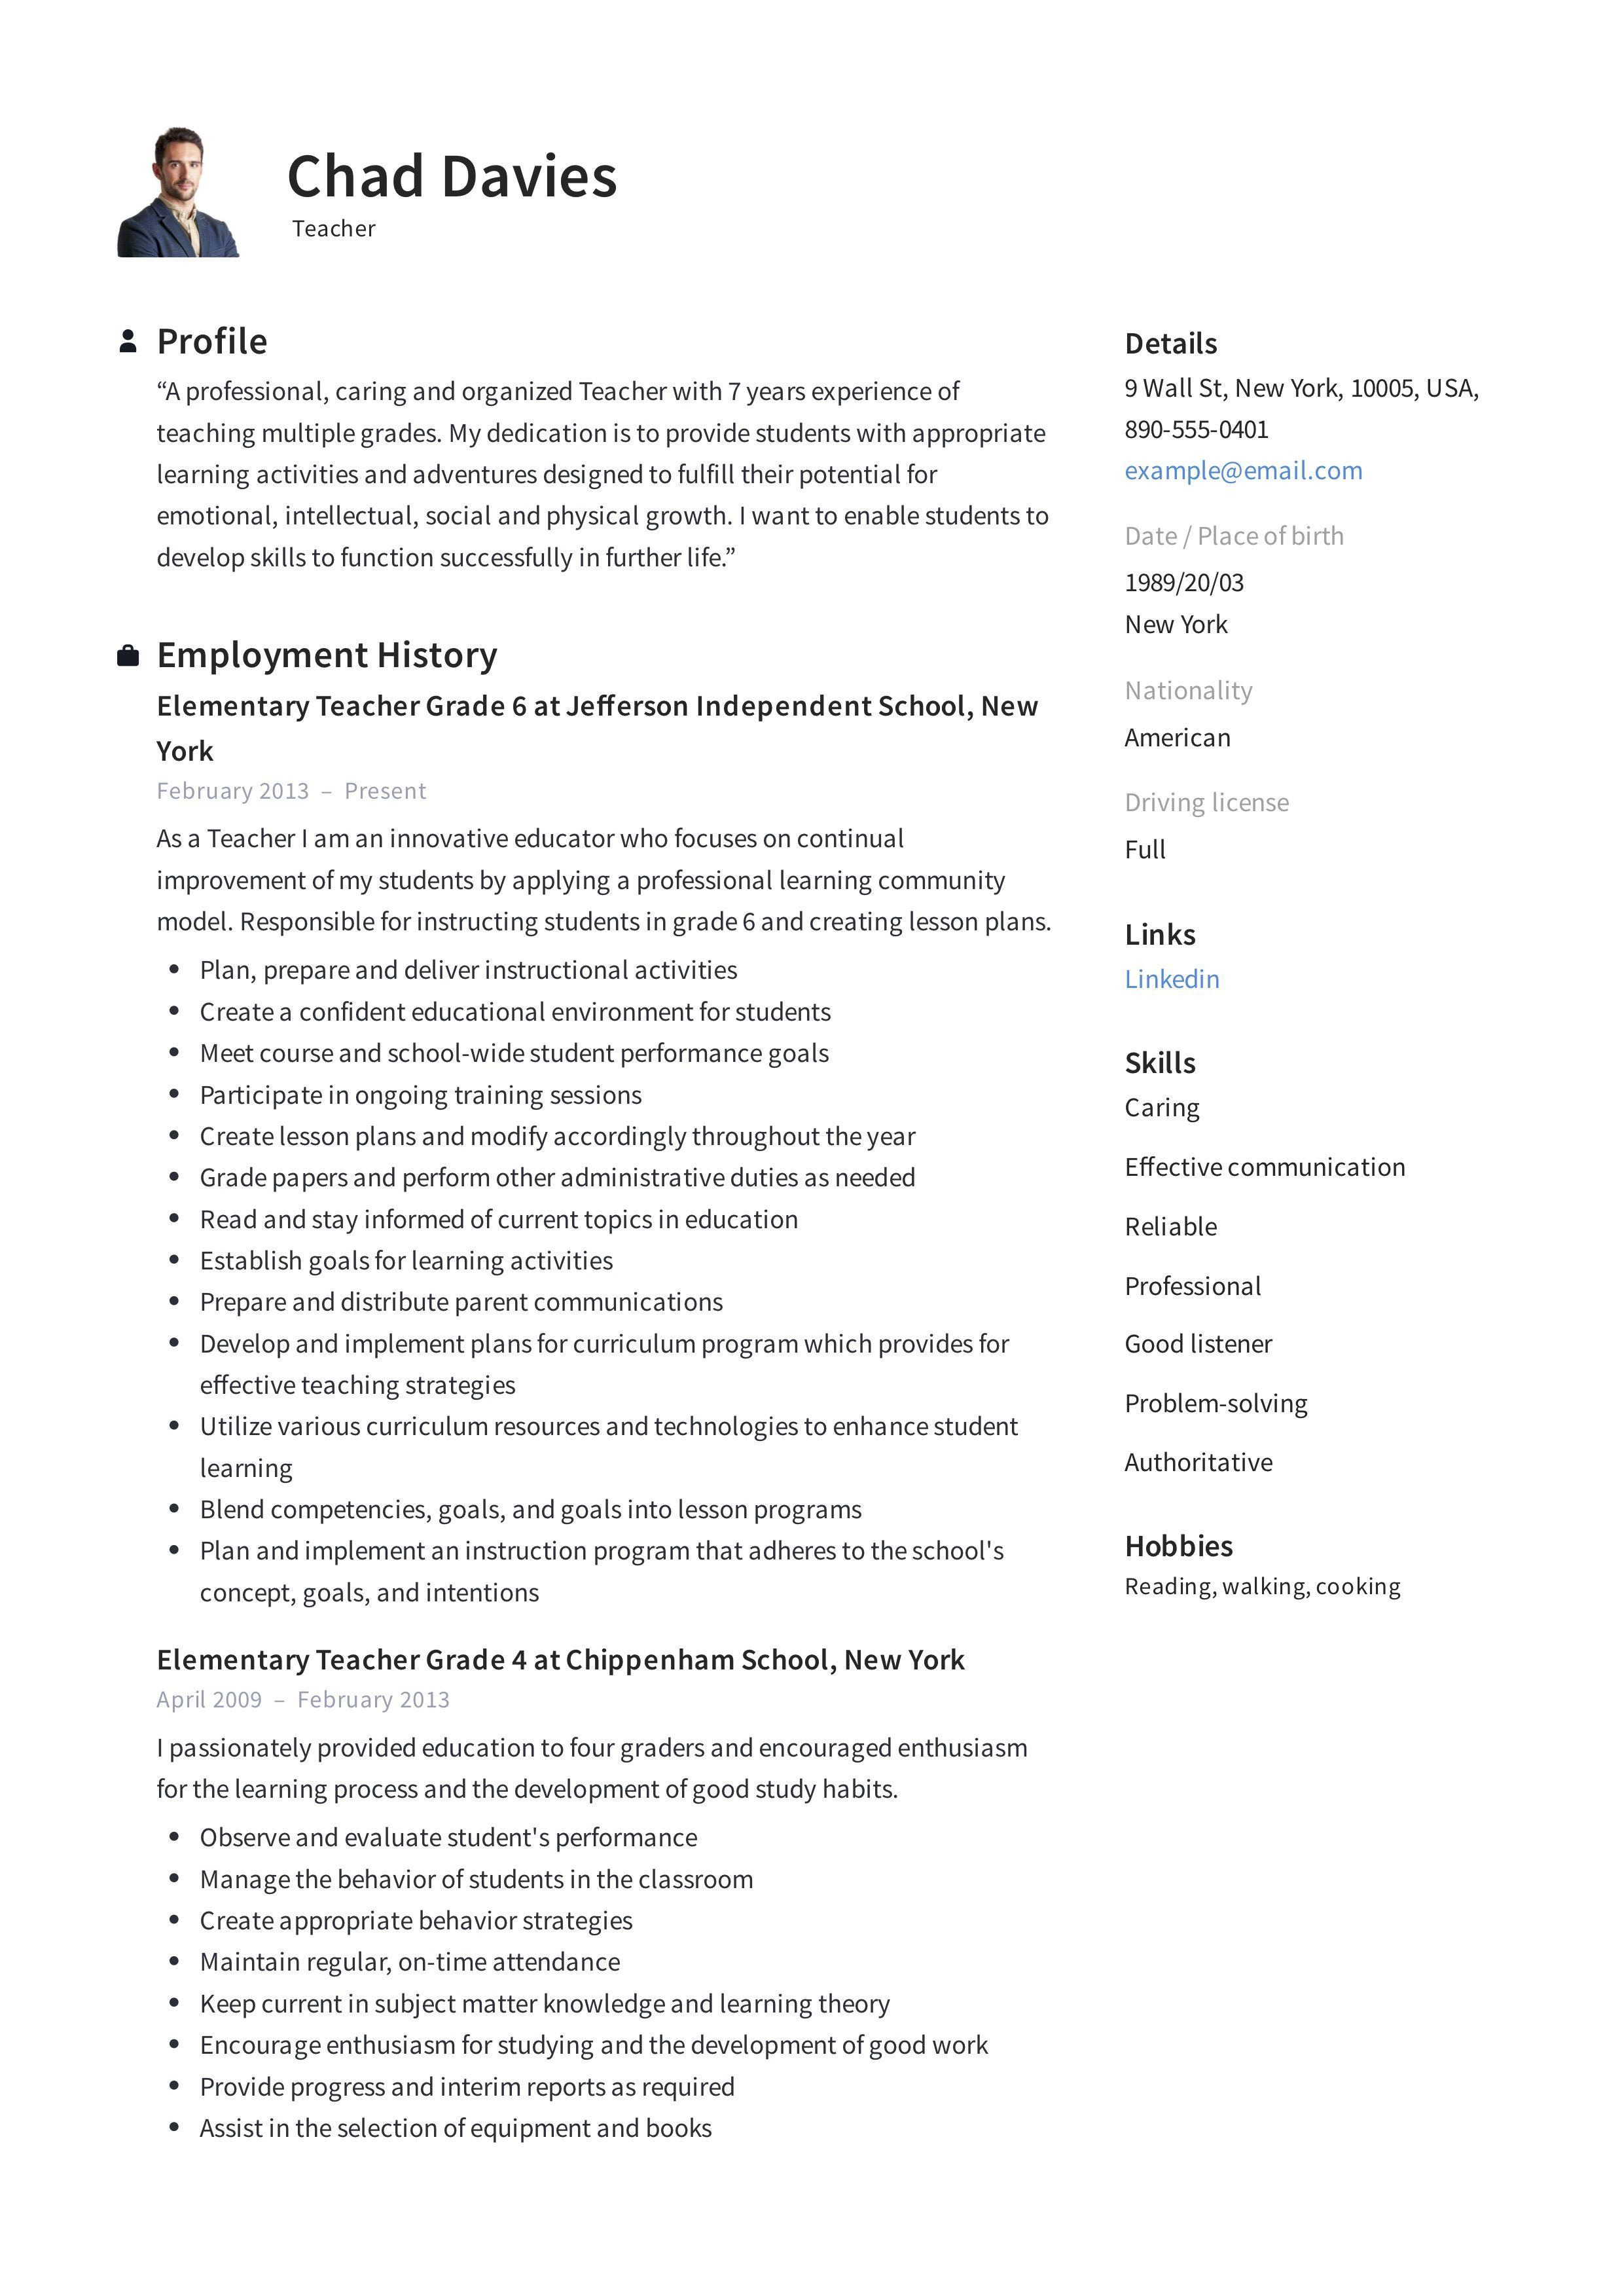 Teacher Resume & Writing Guide in 2020 Teacher resume